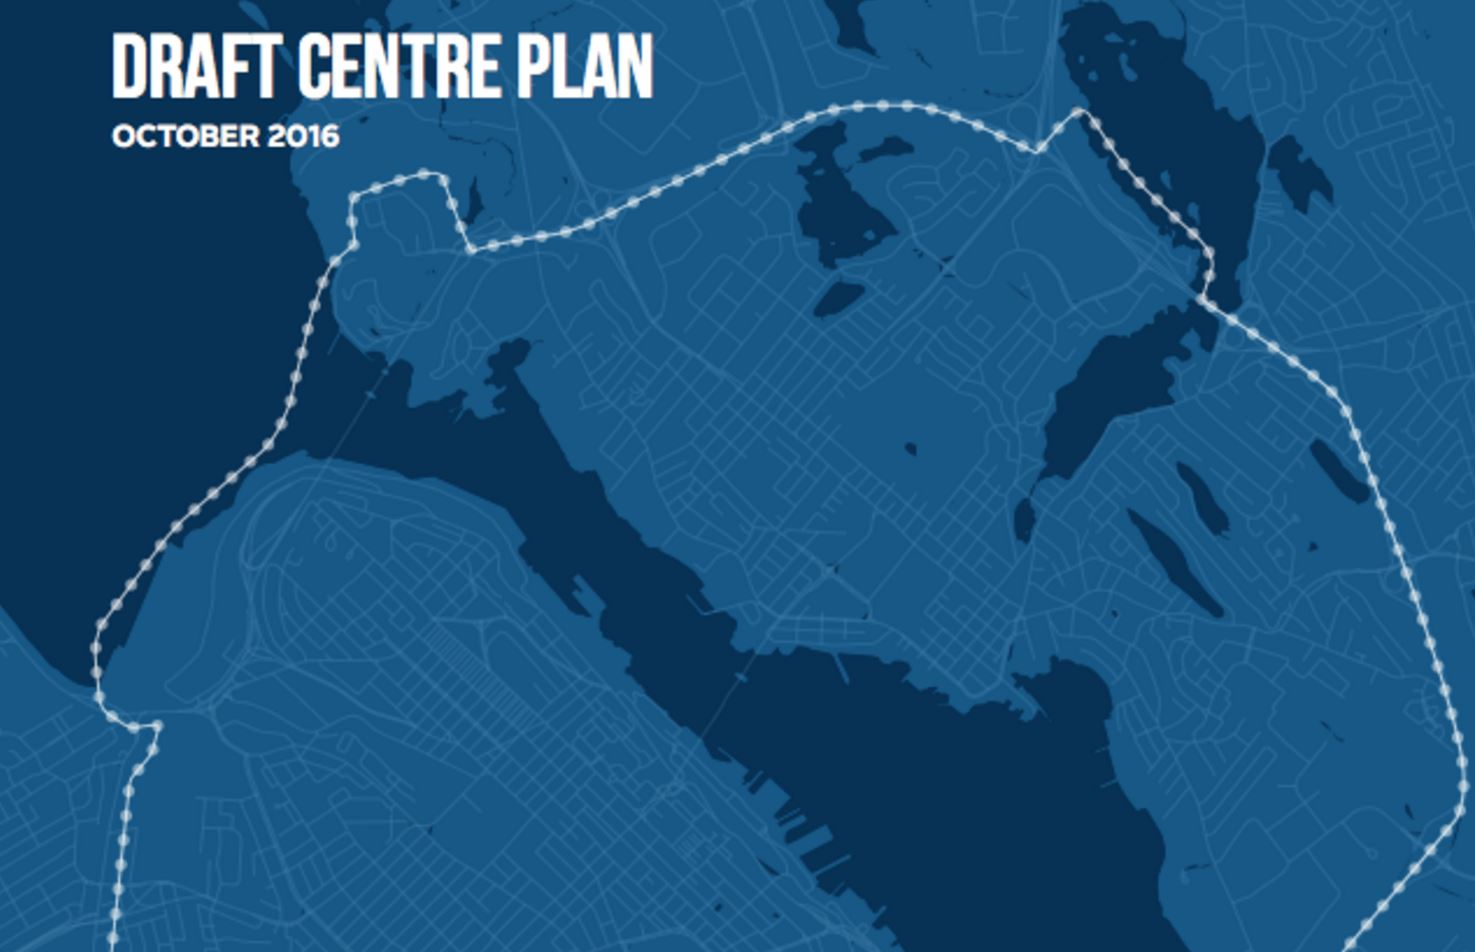 HRM Center Plan Aims to Make City More Pestrian-Oriented